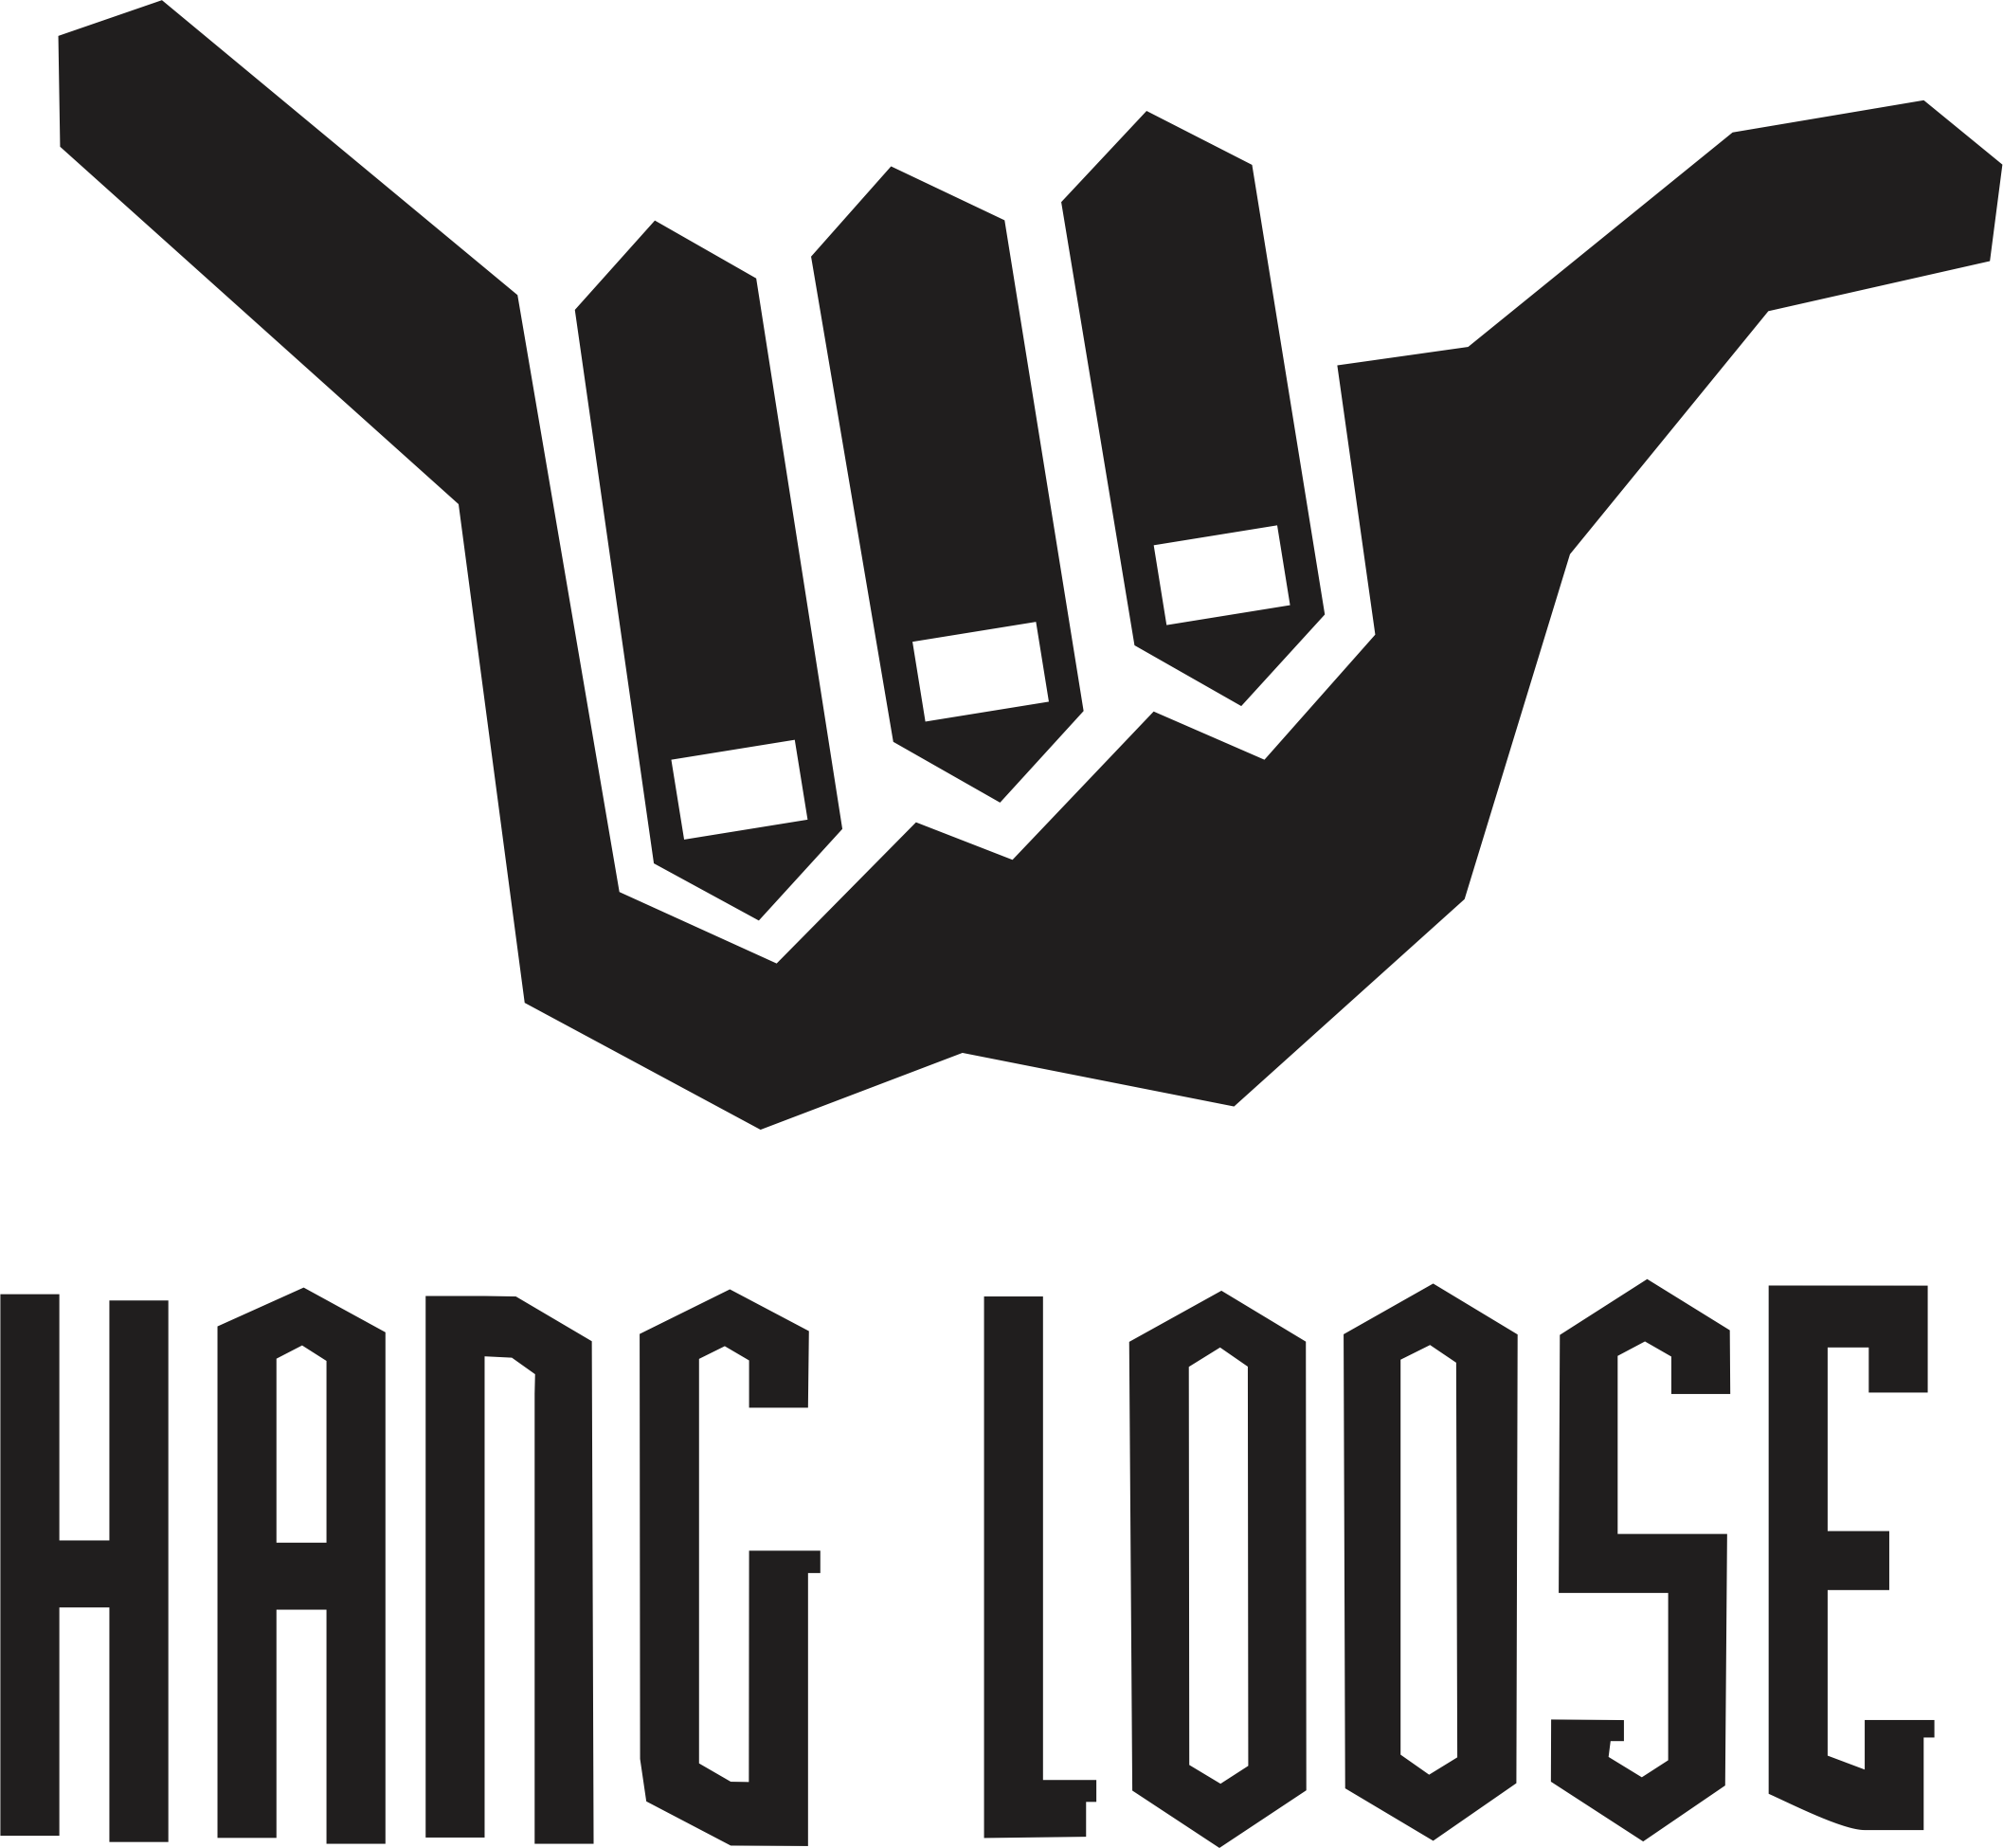 Hands clipart hang loose. By roger mafra revista